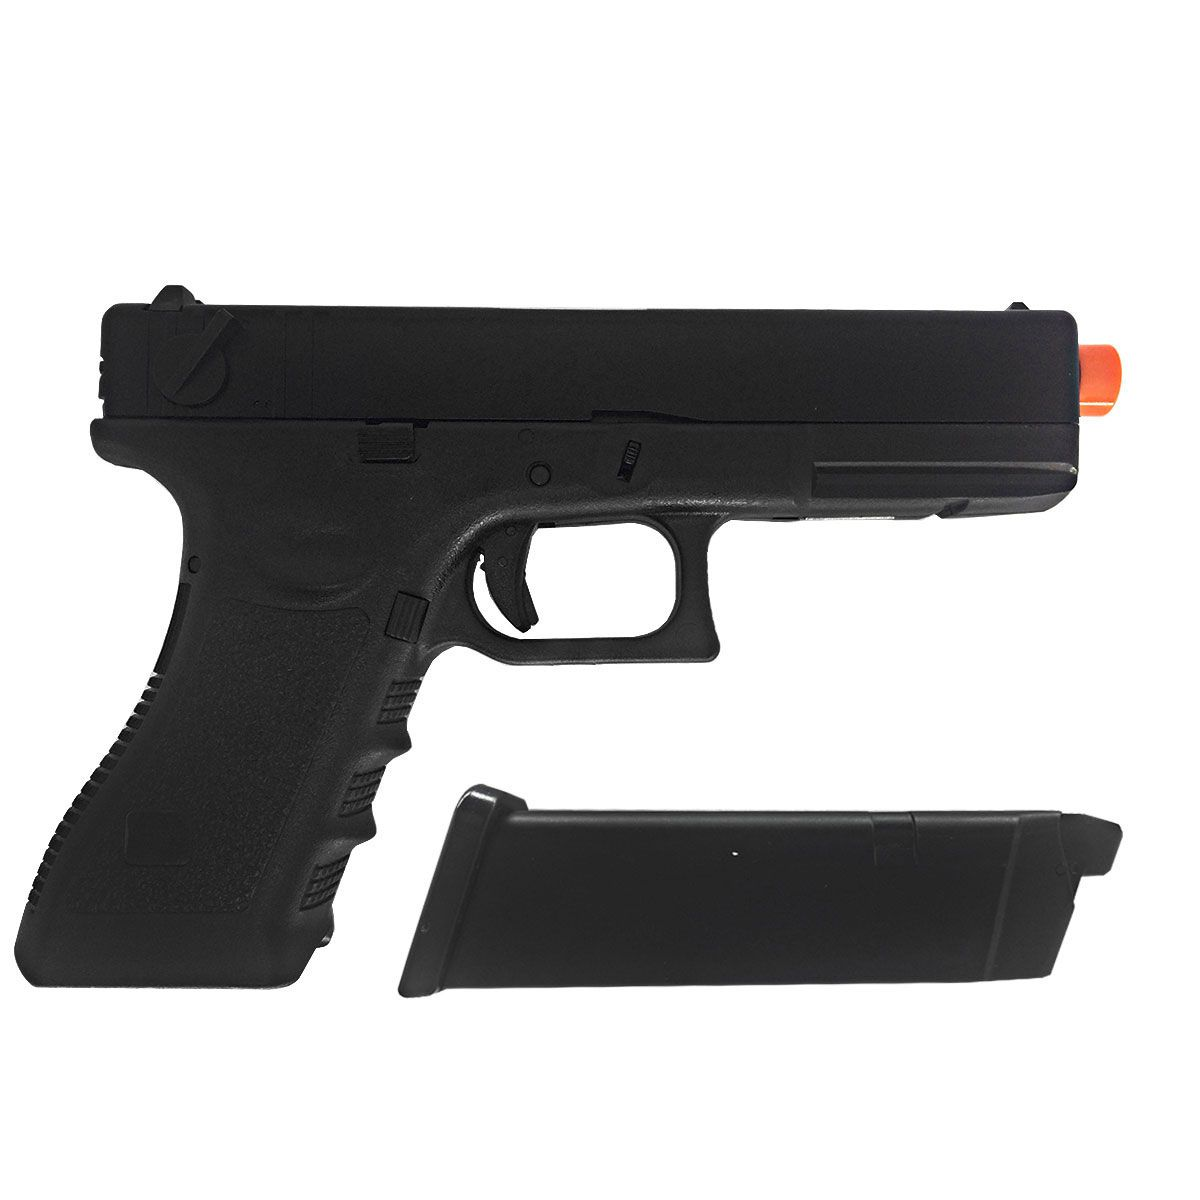 Pistola de Airsoft Army Armament R18 Slide Metal GBB 6mm